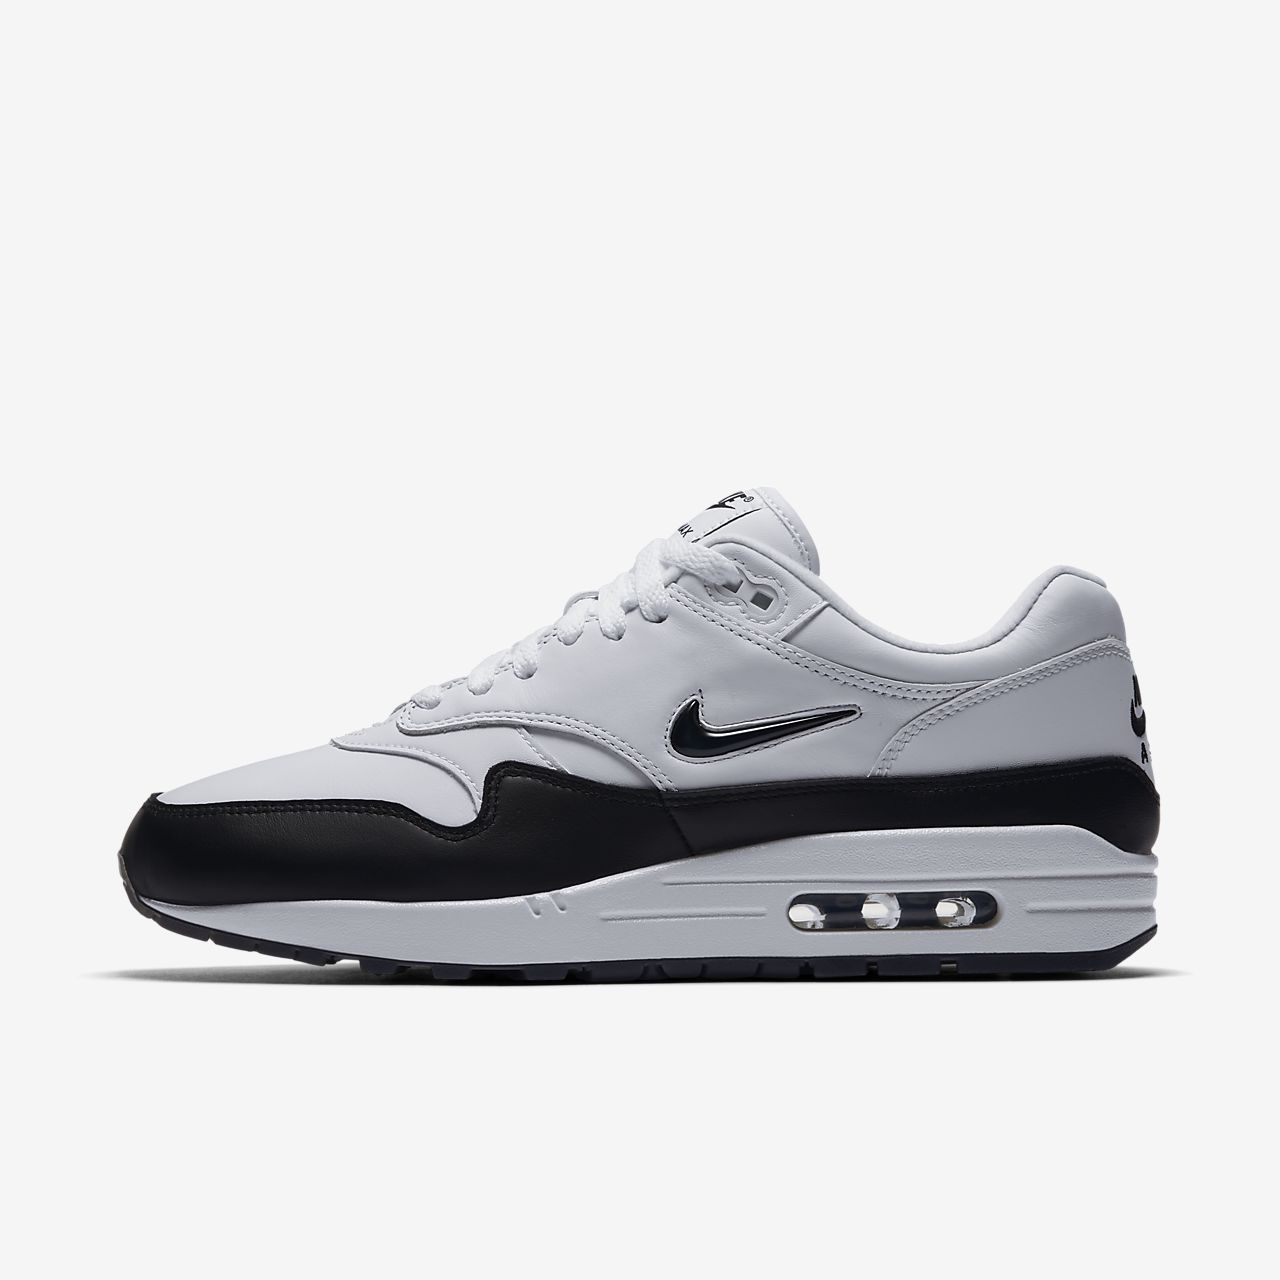 Nike Sportswear AIR Max More Homme Baskets Mode Noir, Pointure:47.5